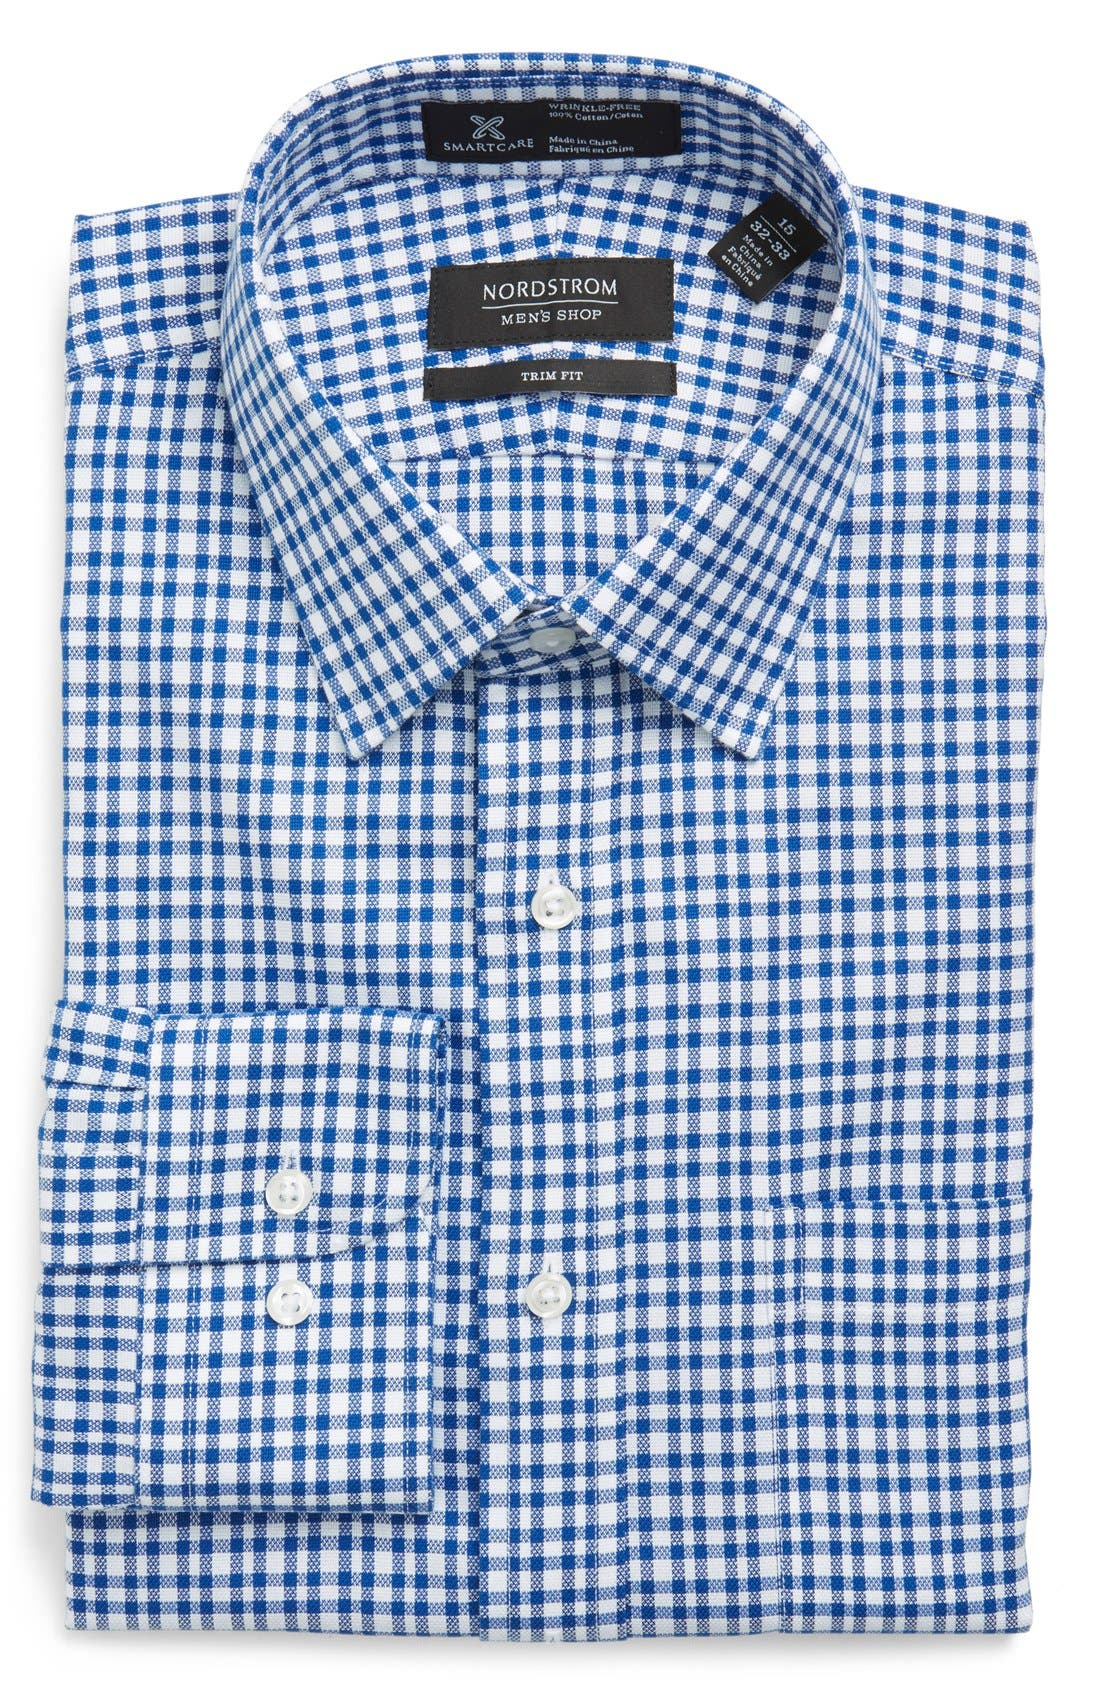 NORDSTROM MEN'S SHOP Smartcare™ Trim Fit Plaid Dress